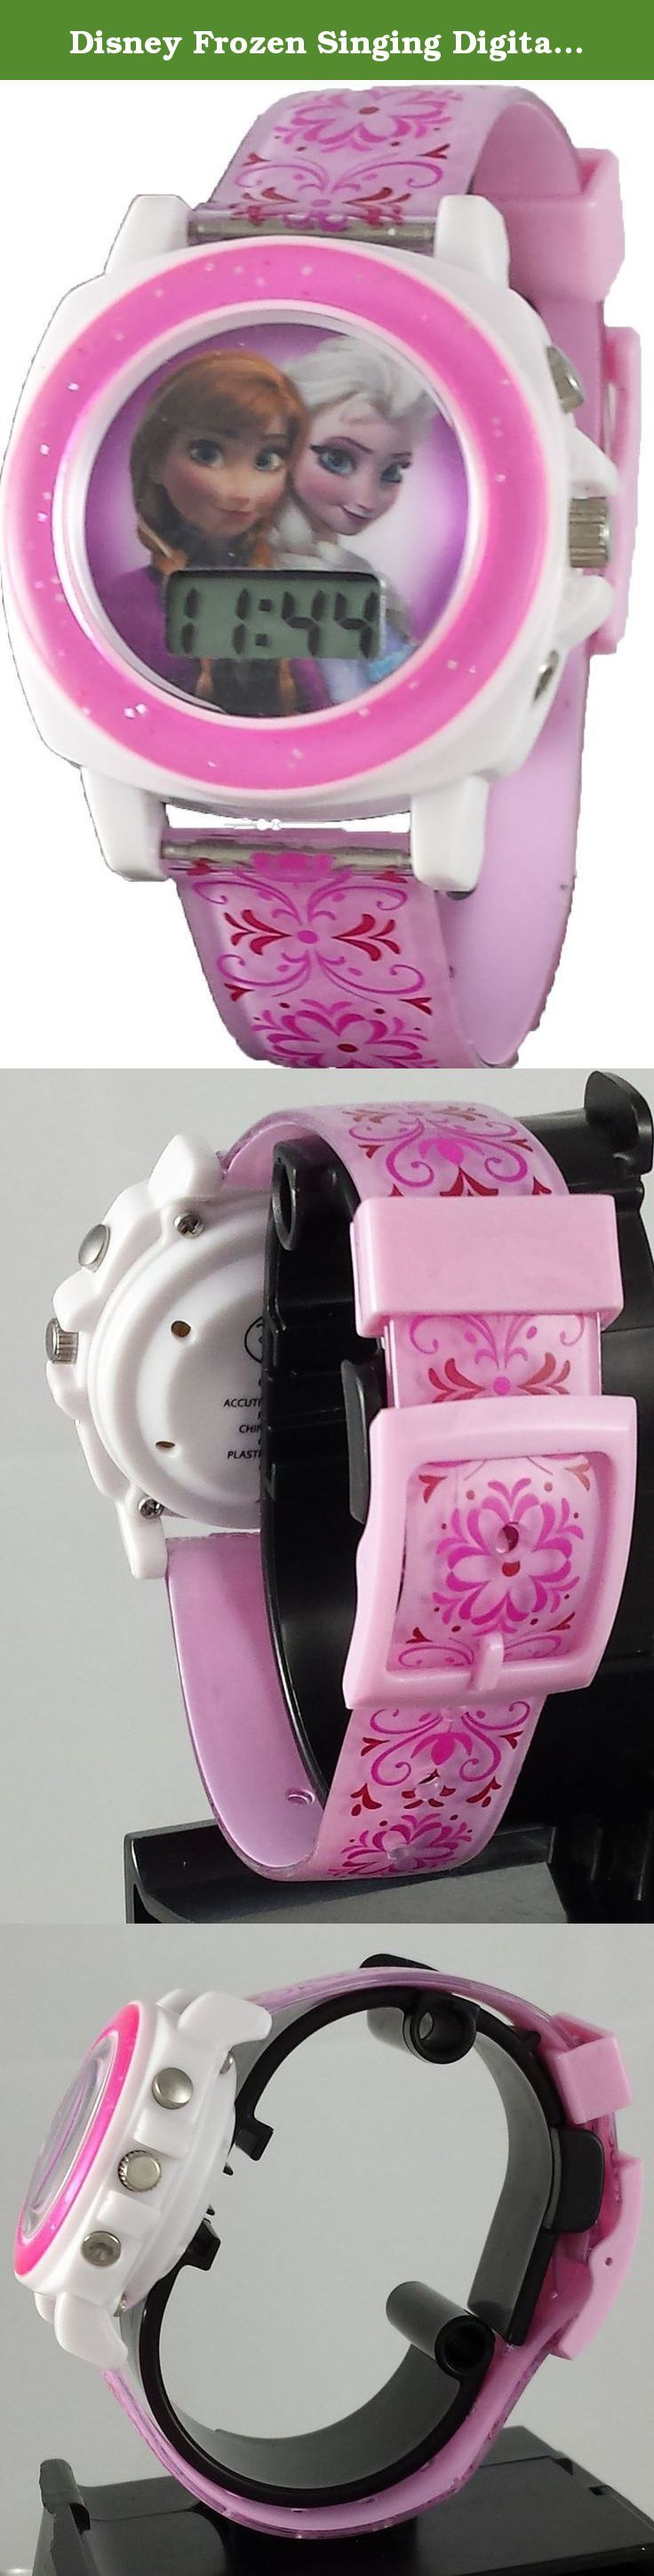 """Disney Frozen Singing Digital Watch. This plastic watch with Frozen graphic on dial and floral printed band. Press a button and you will hear the hit song """"Let it Go"""". This a great watch for that little Frozen fan in your life."""